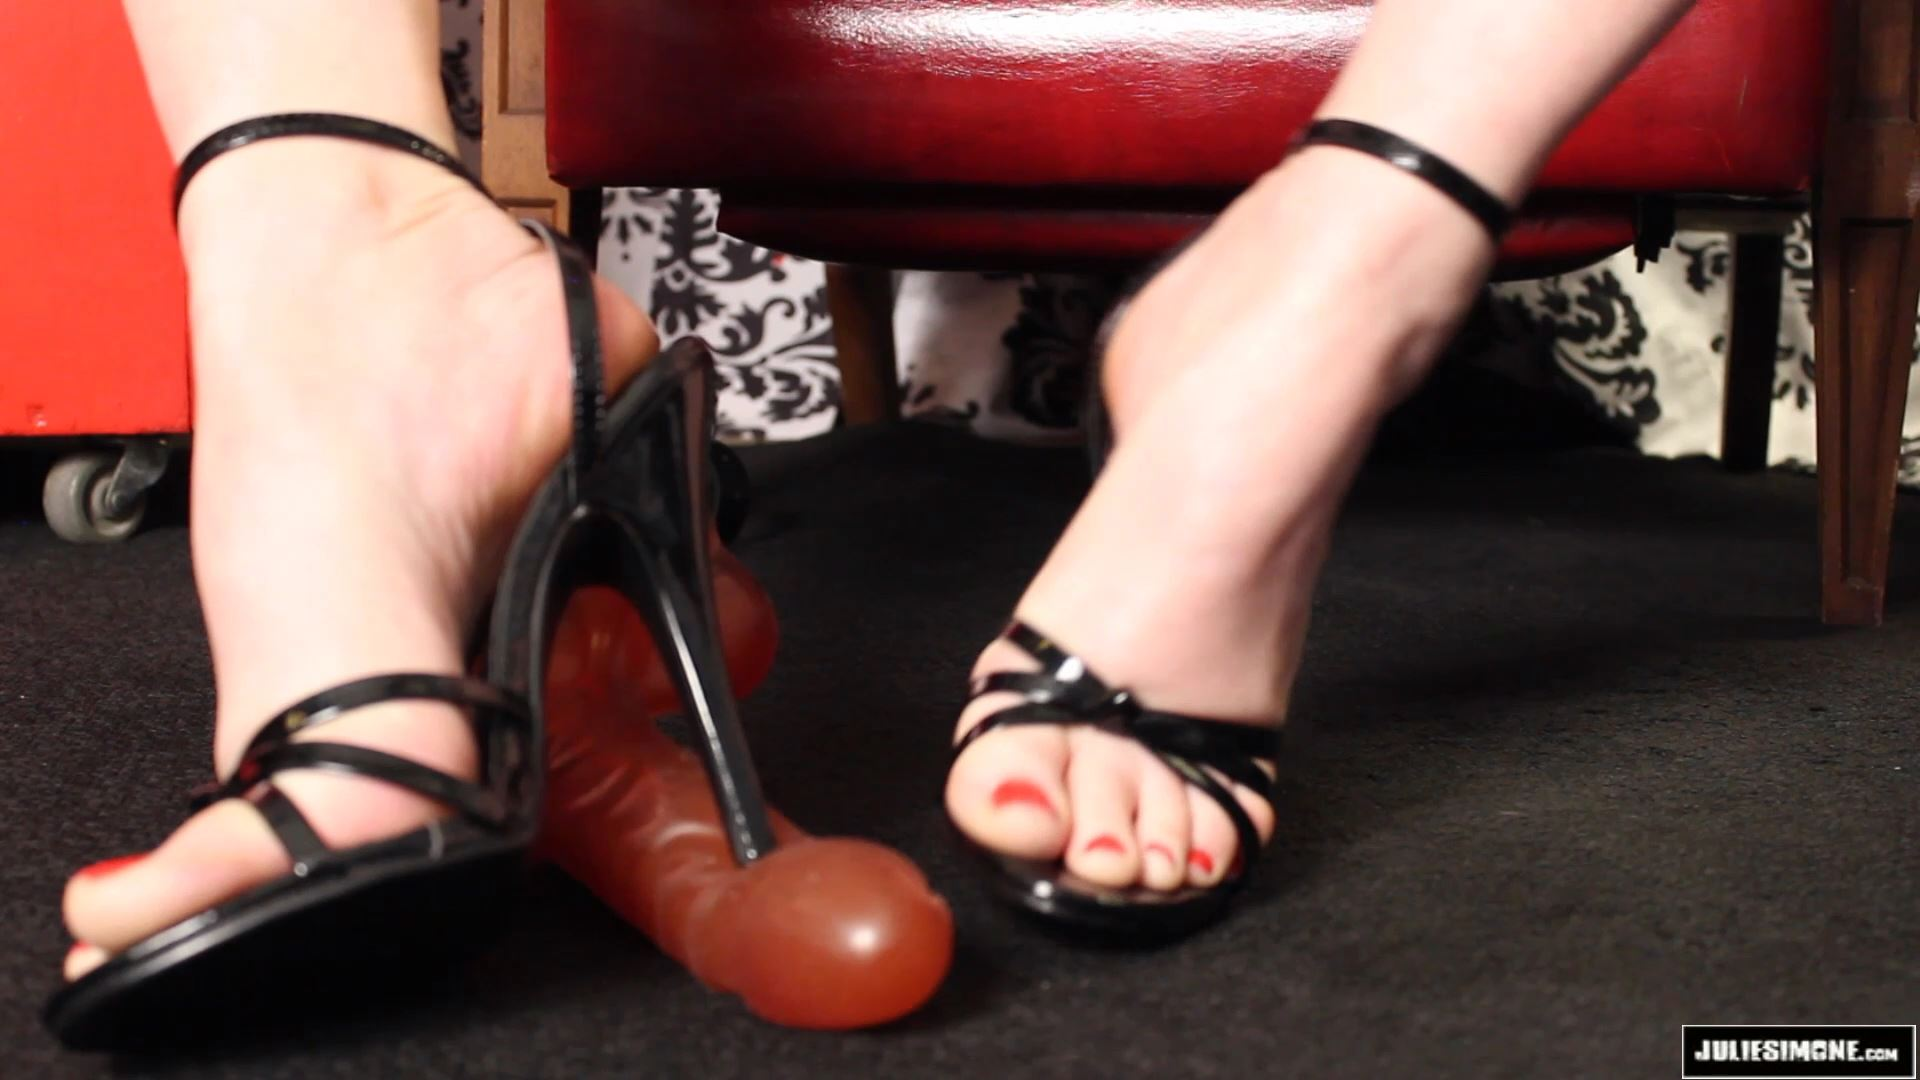 Julie Simone In Scene: Cockstomping POV - JULIESIMONE - FULL HD/1080p/MP4